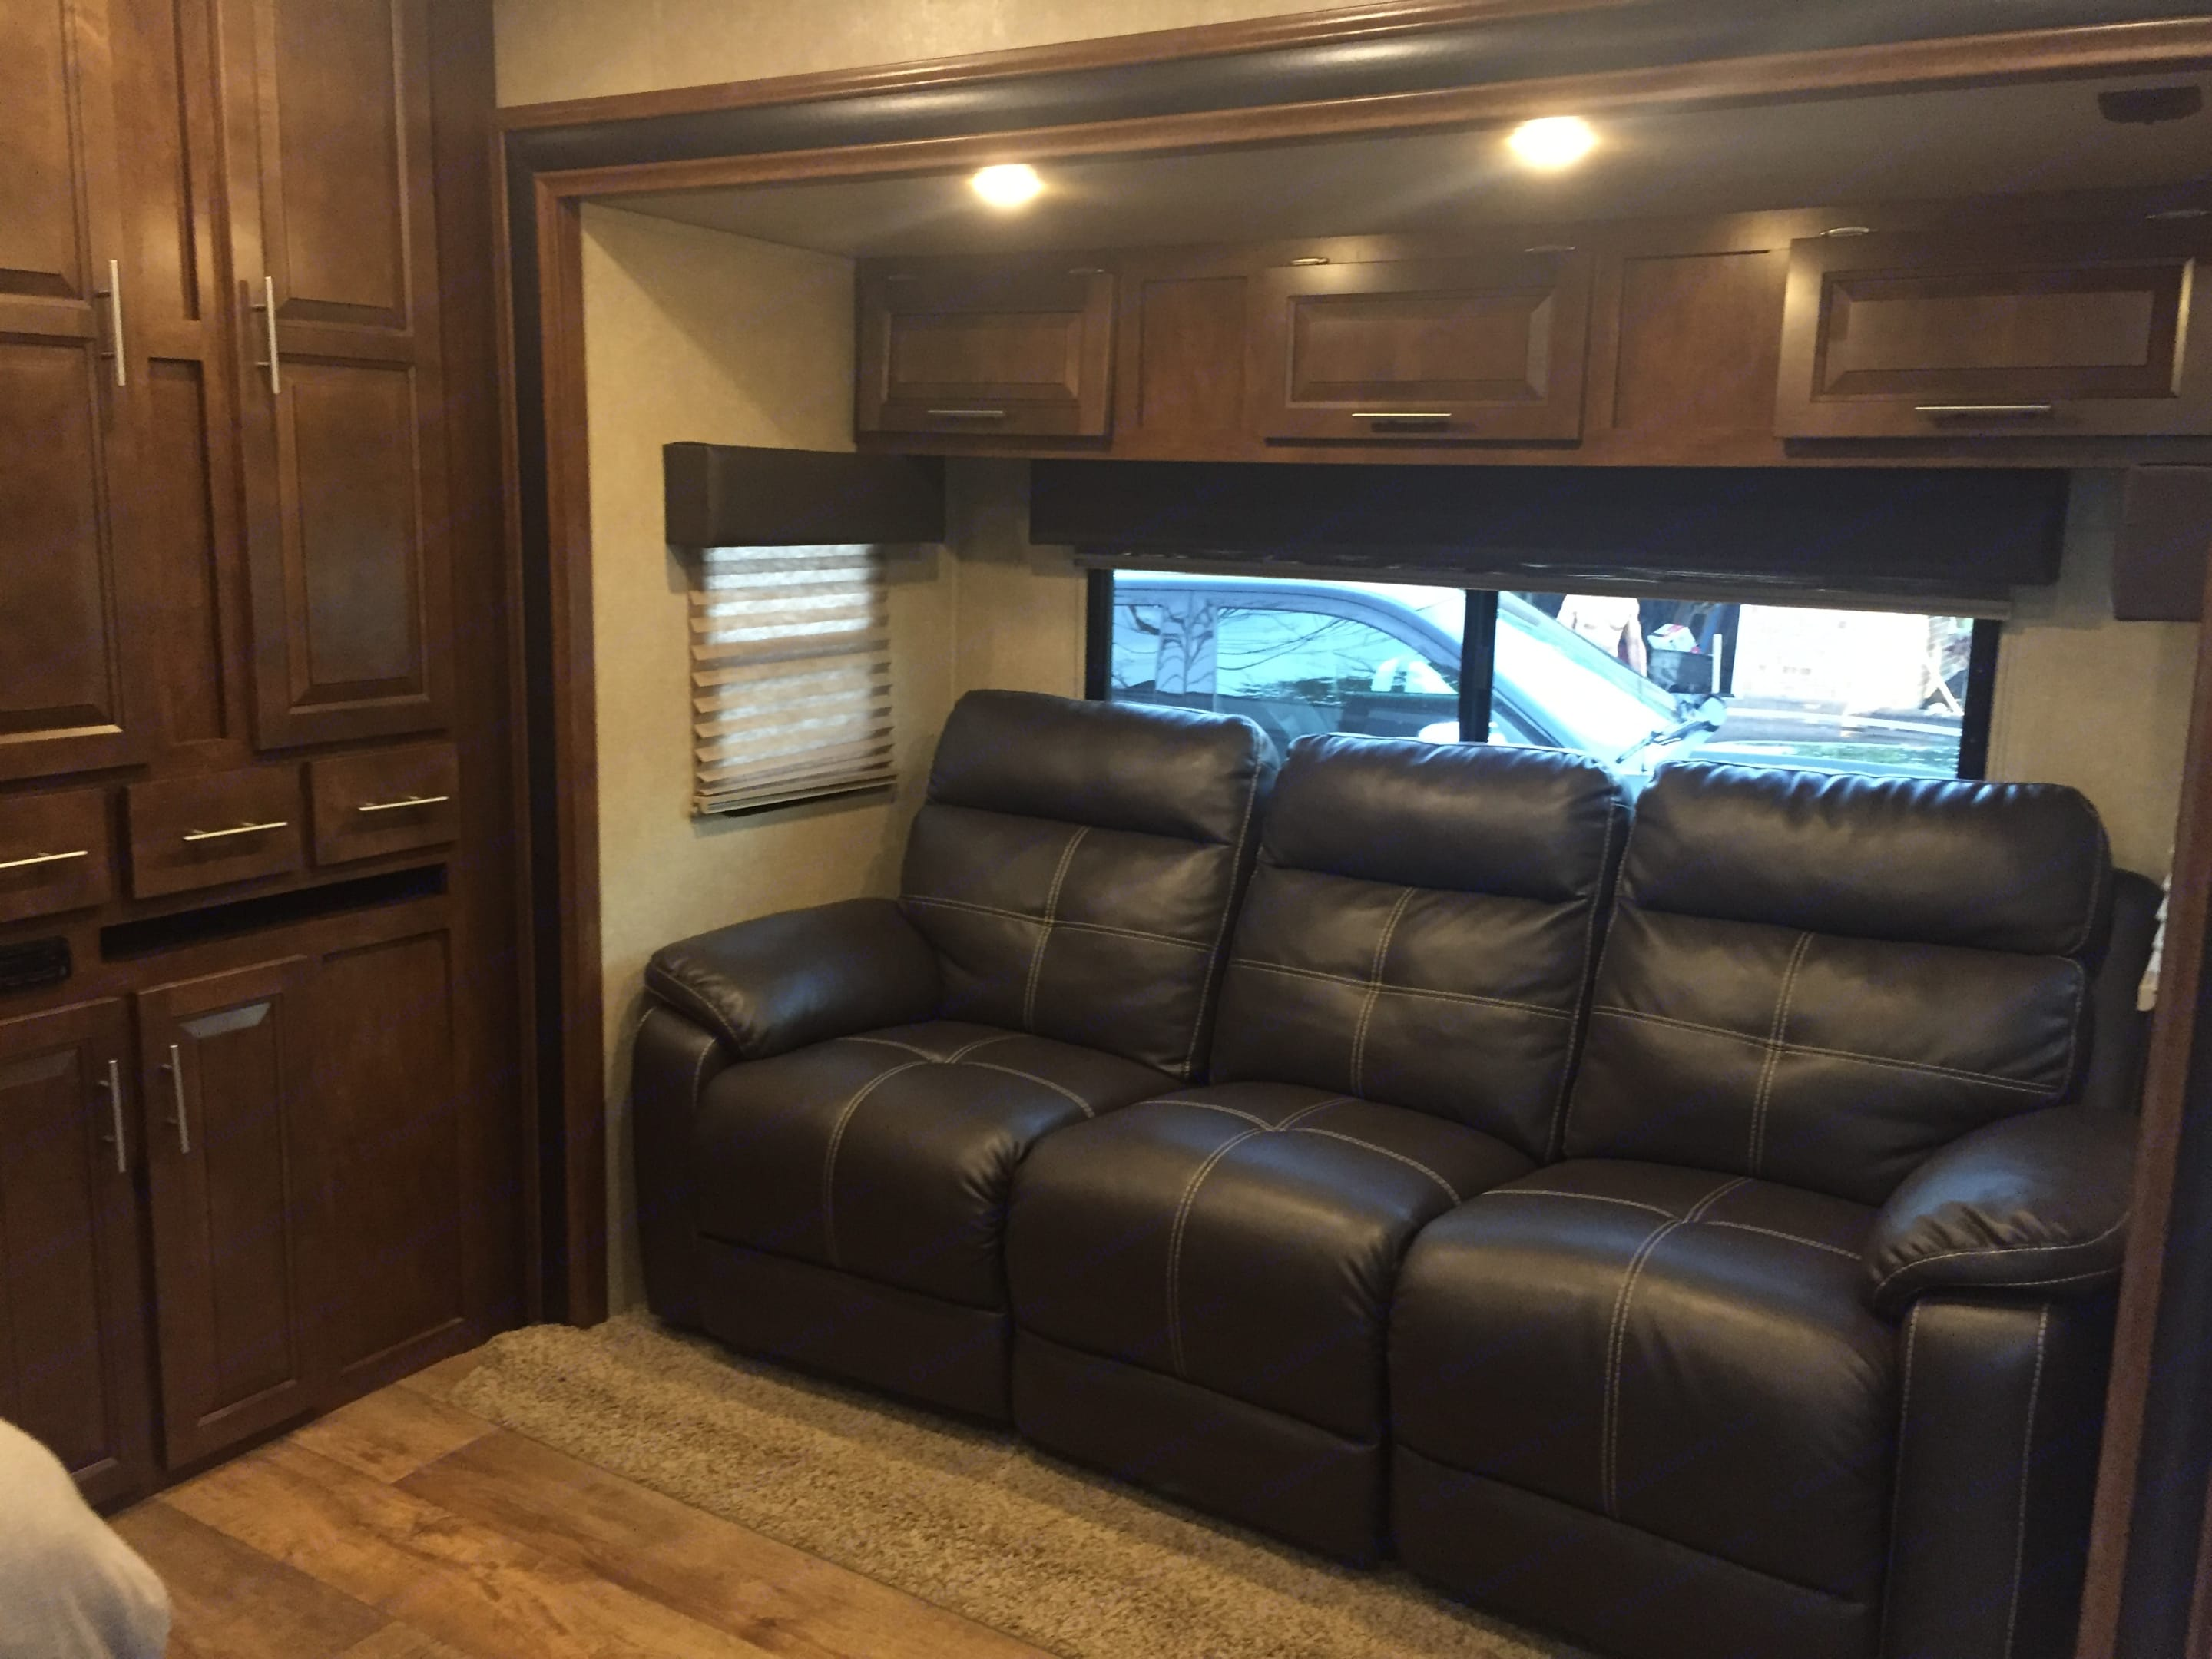 Slide out living room makes for a very spacious feel. All three sections of the sofa recline. Plenty of storage available. Folding dinner table included.. Forest River Lite 2015